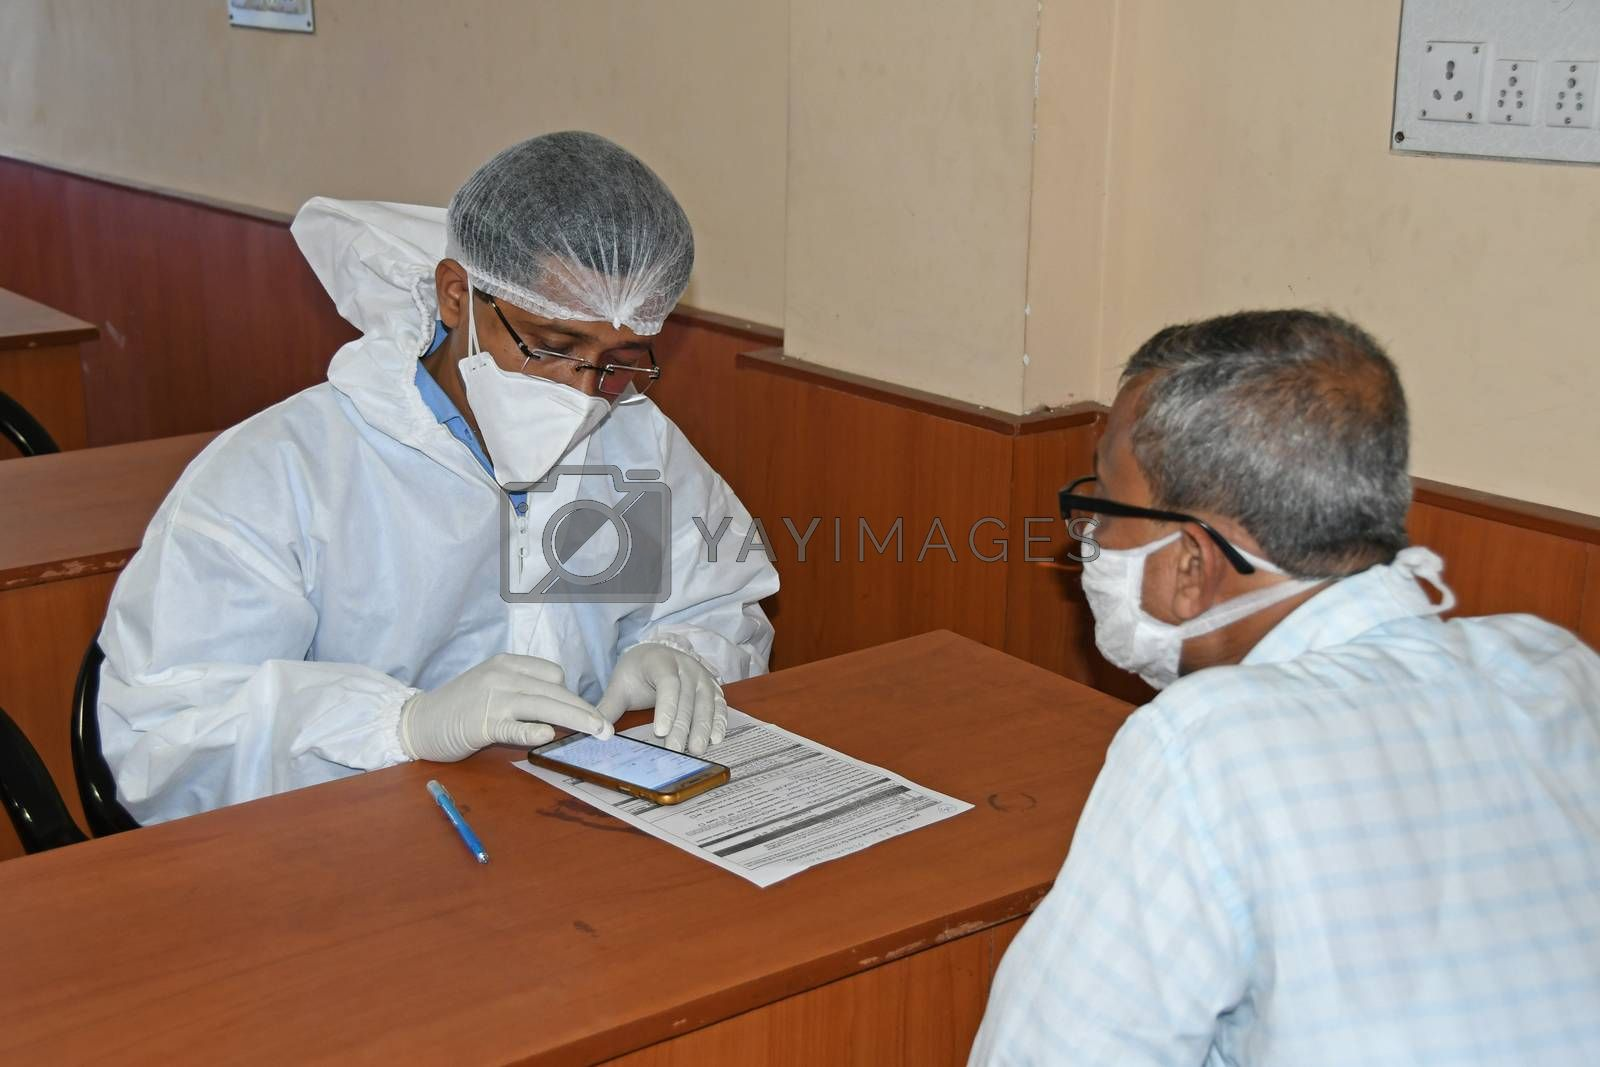 Burdwan Town, Purba Bardhaman District, West Bengal / India - 24.06.2020: Health workers are collecting samples of asymptomatic journalist for COVID-19 (Novel Coronavirus) test in the initiative of Purba Bardhaman District Health Department.